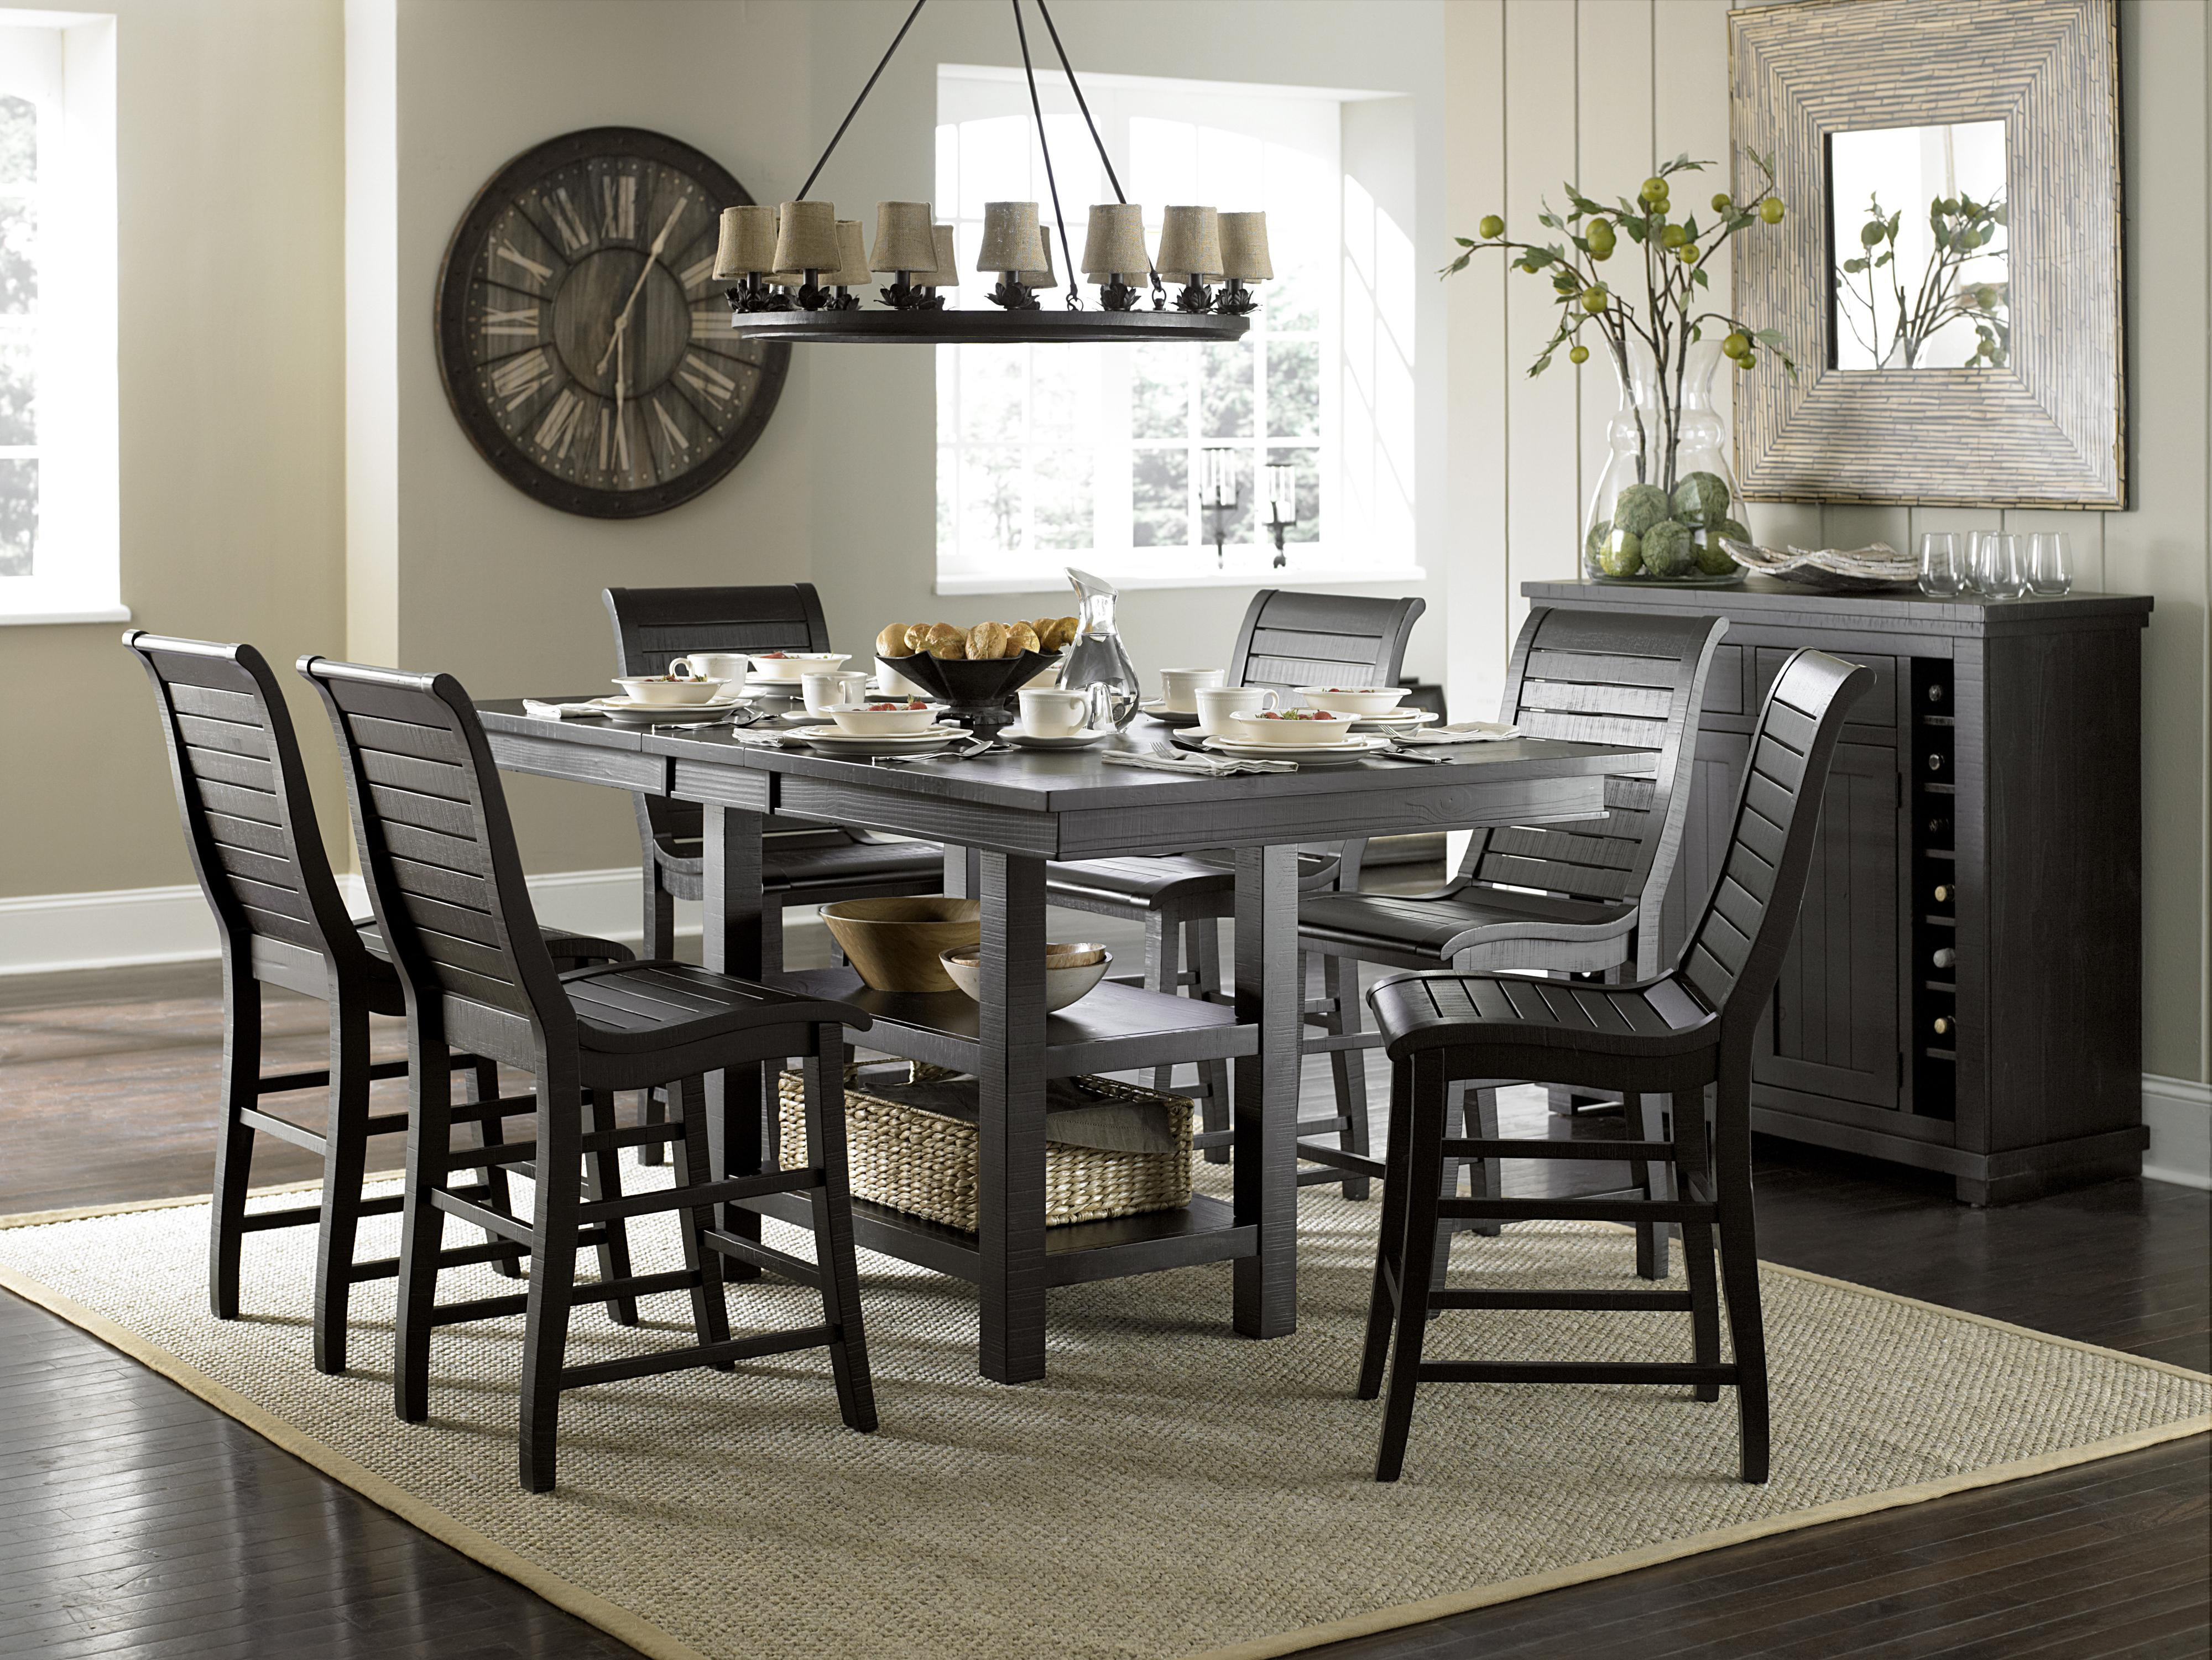 Progressive furniture willow dining casual dining room for Casual dining room